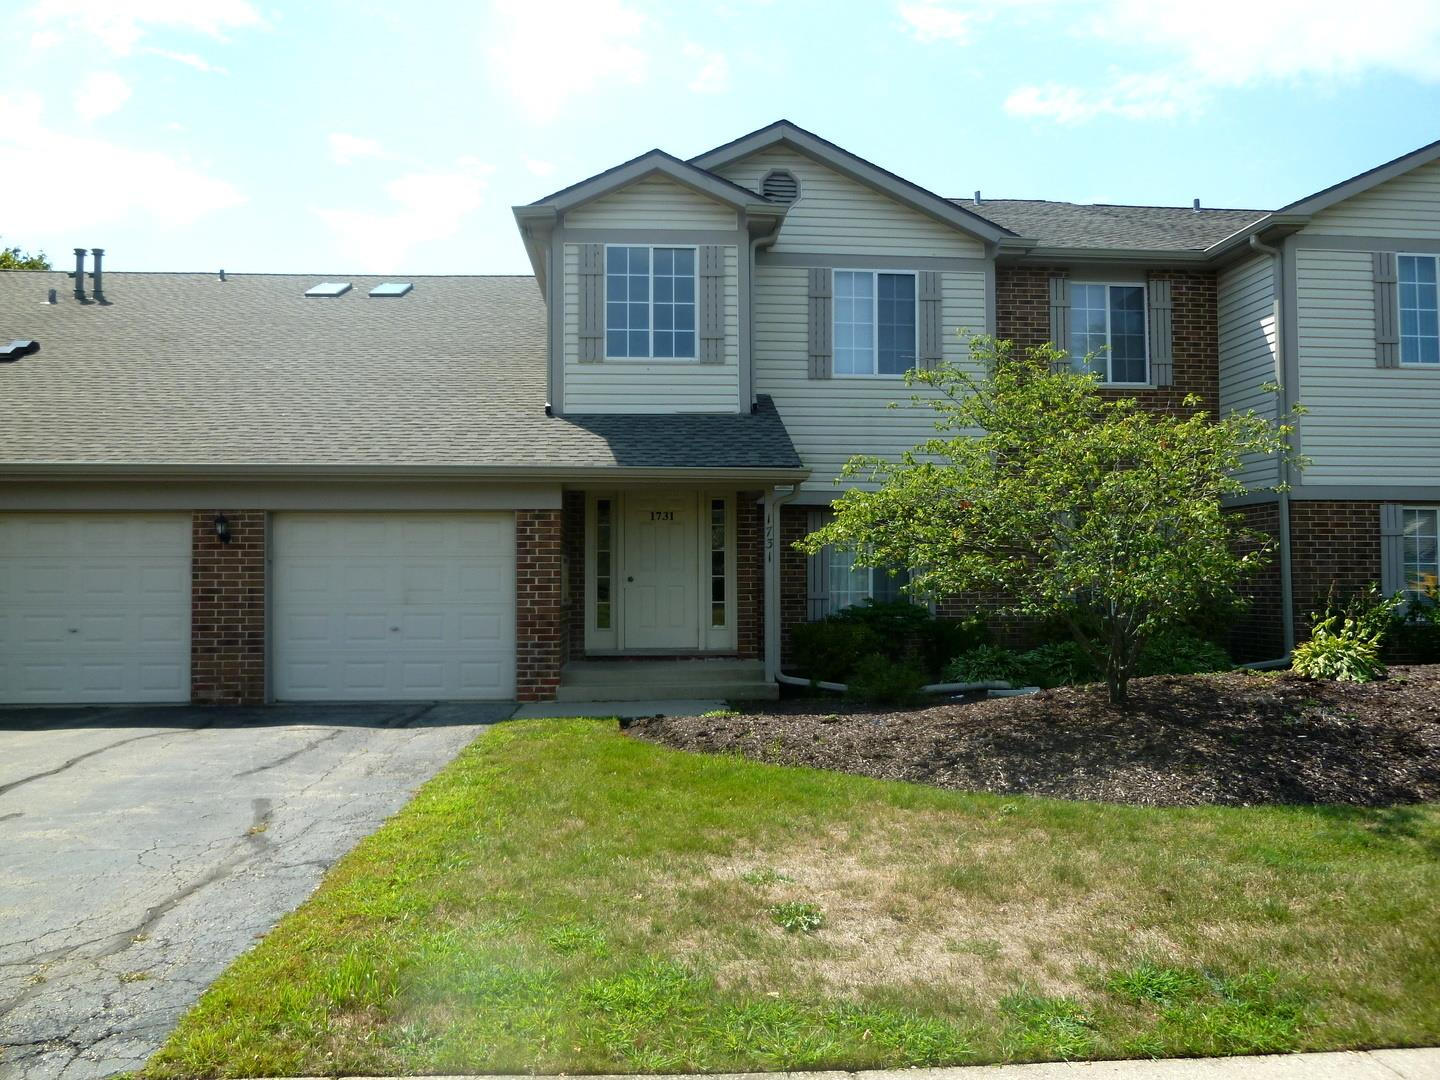 1731 Chesapeake Lane #1, Schaumburg, IL 60193 - #: 10823926